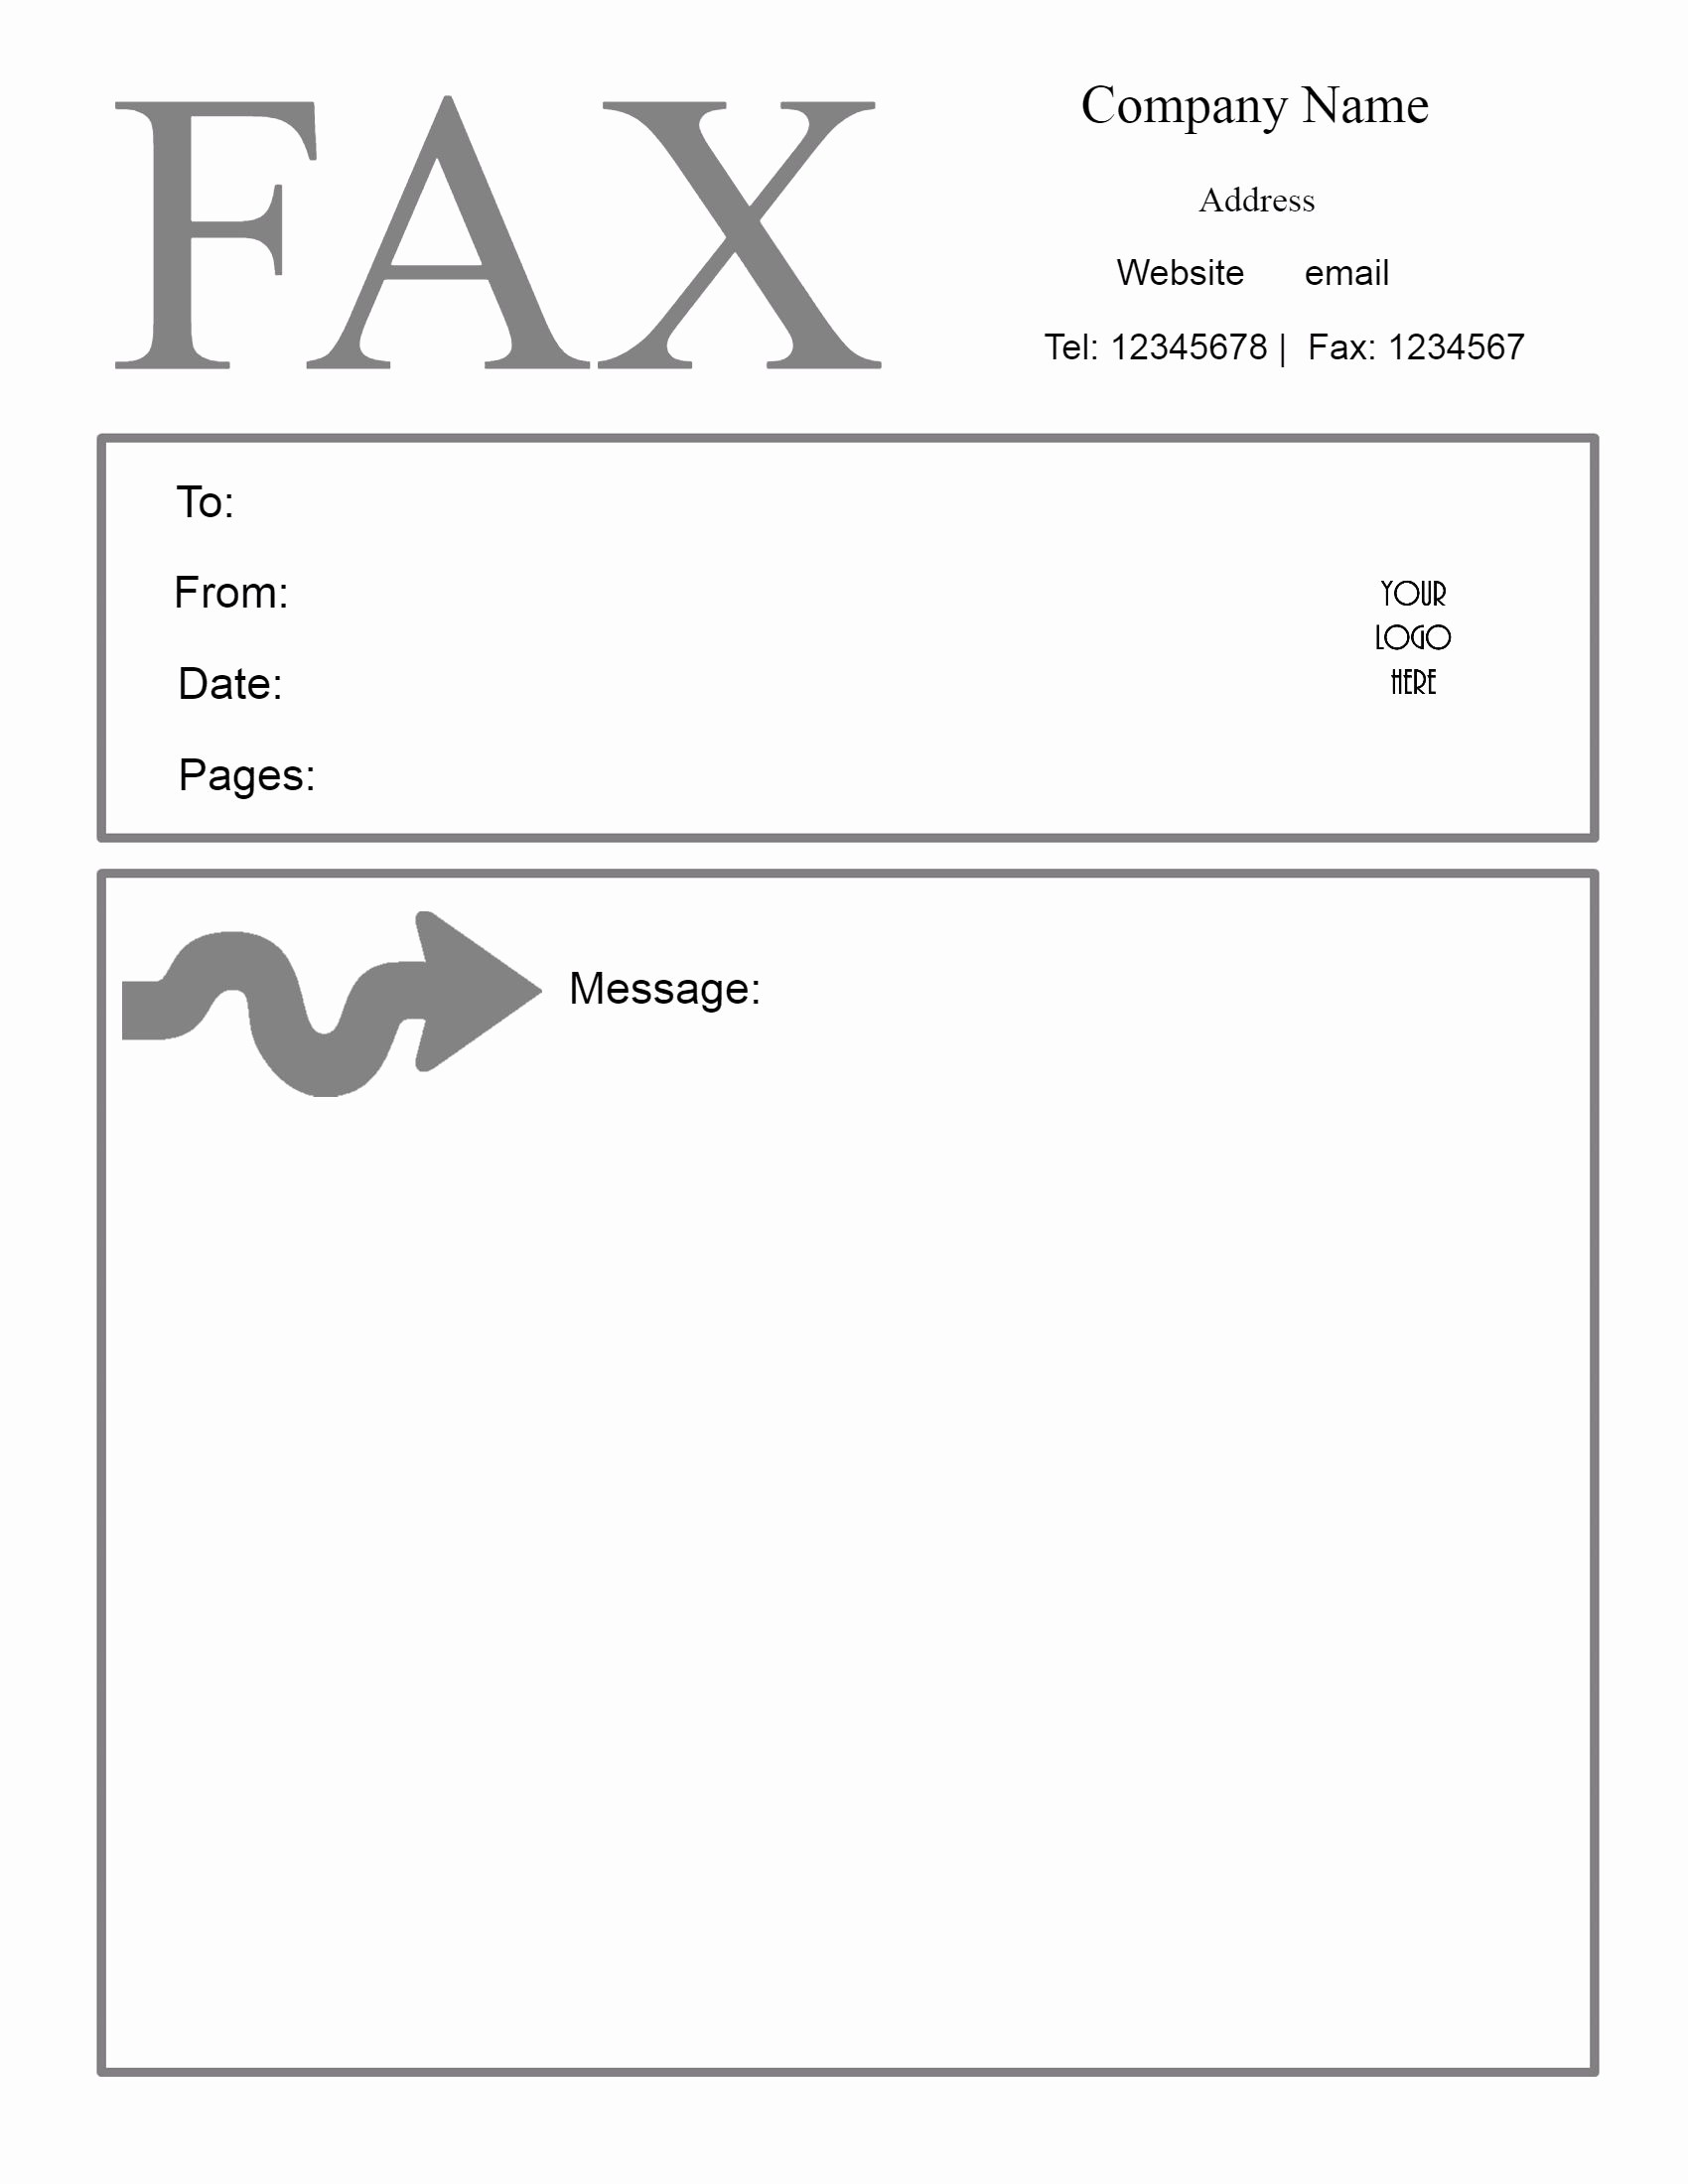 Free Fax Cover Sheet Templates Awesome Free Fax Cover Sheet Template